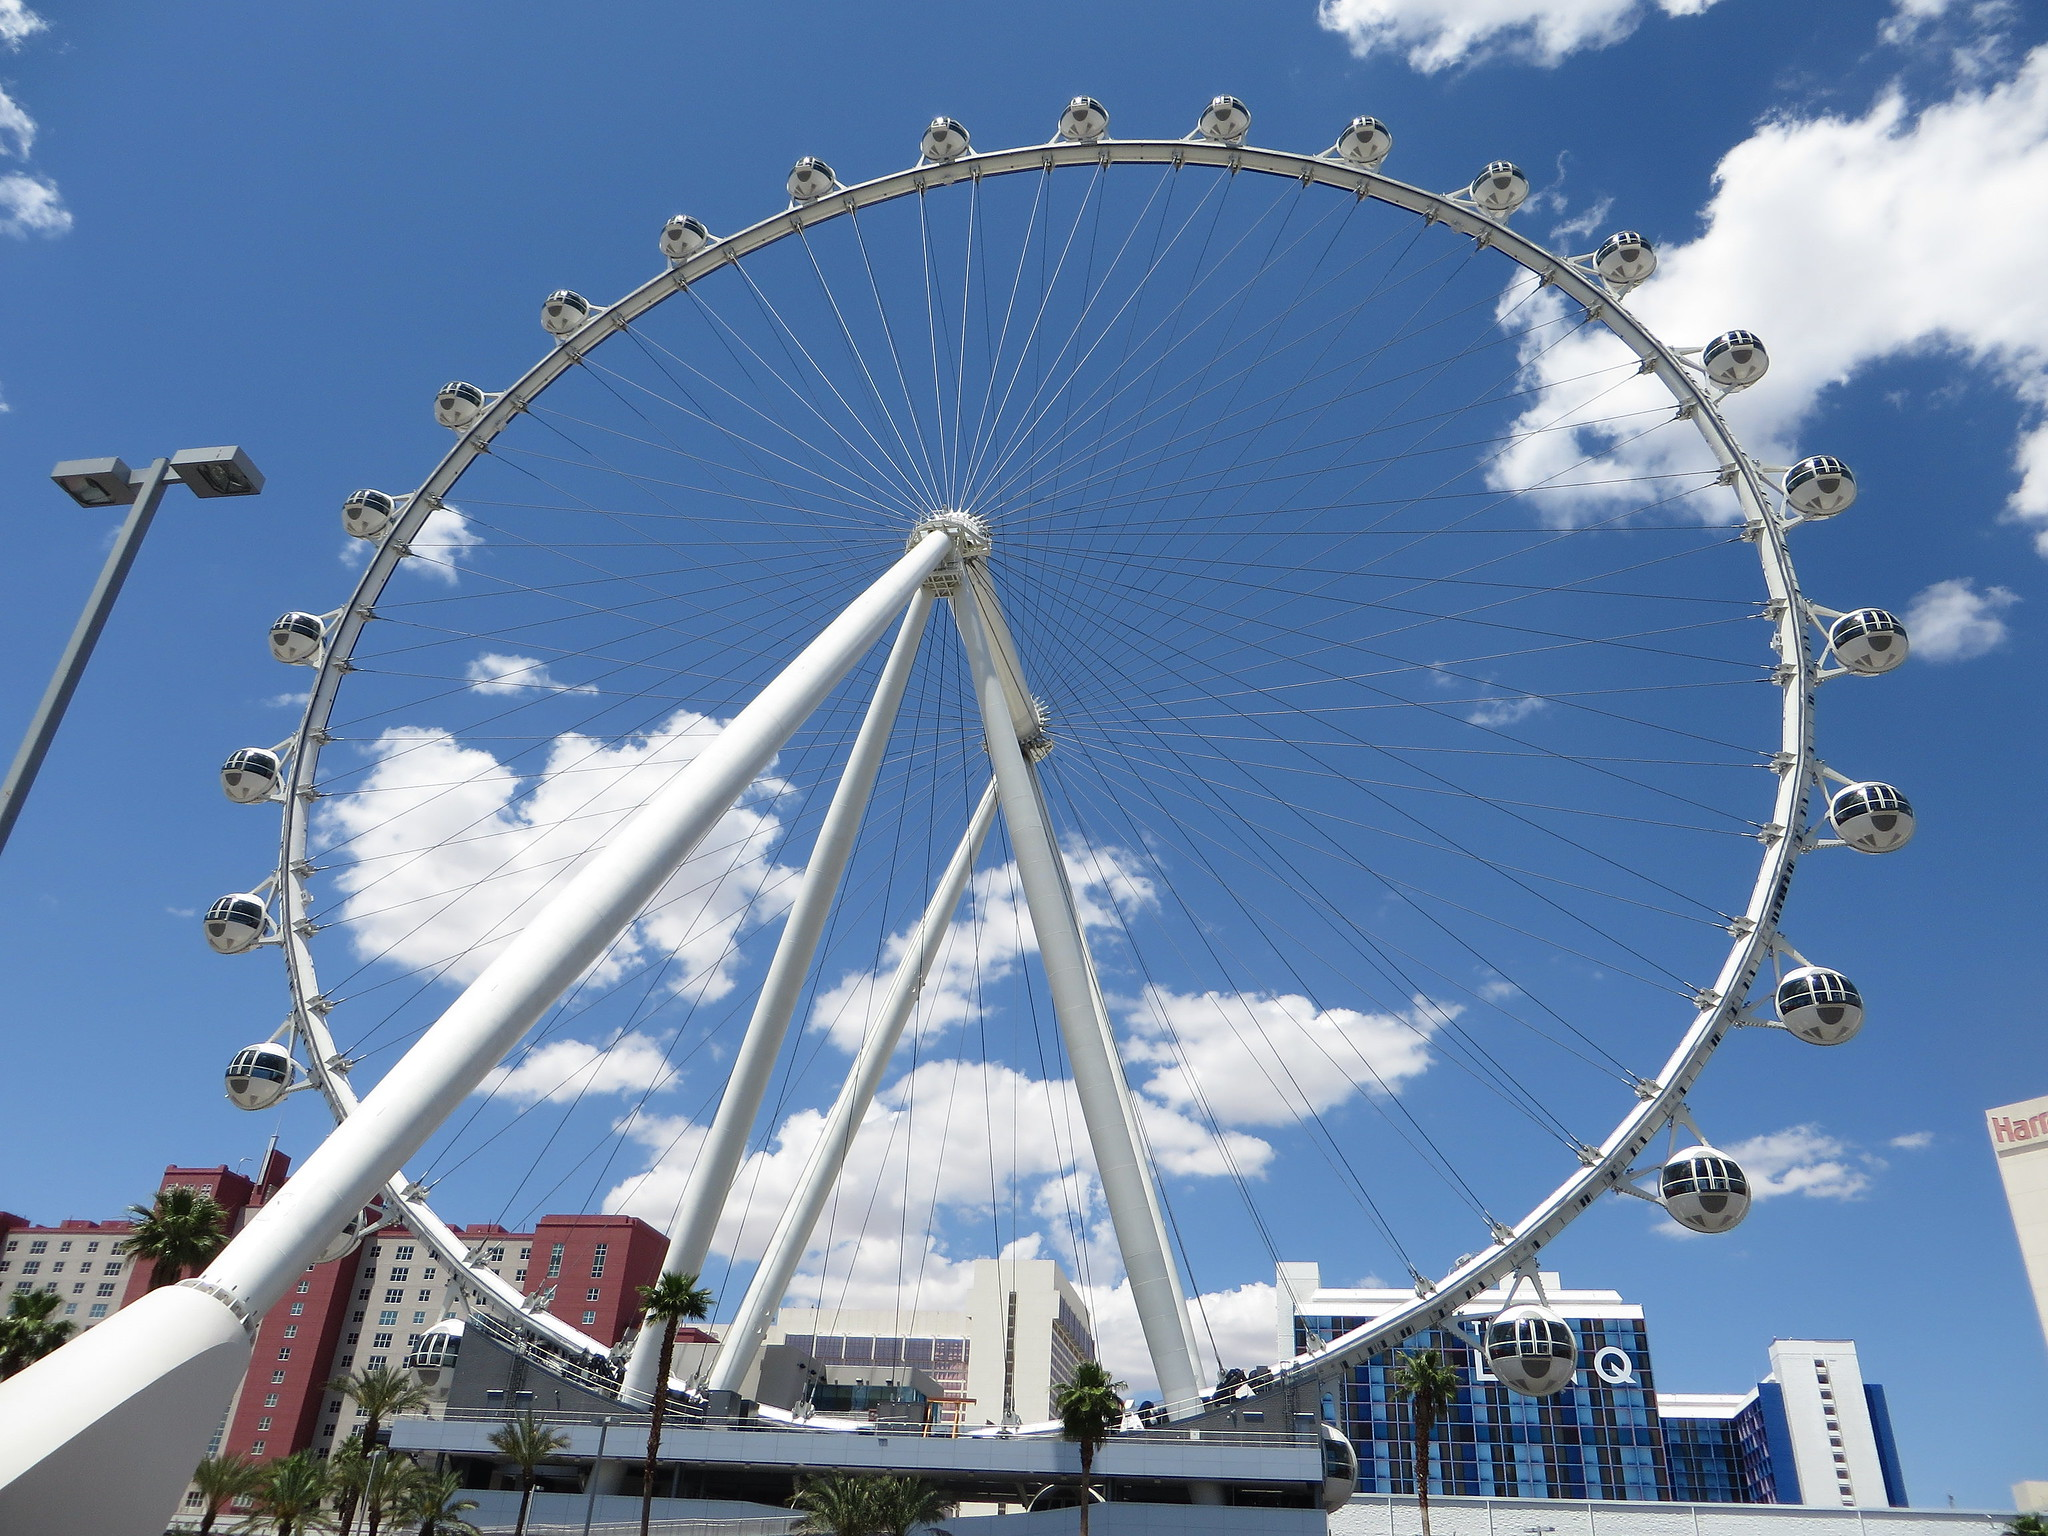 High Roller Ferris Wheel - Things That You Should Not Miss in Las Vegas